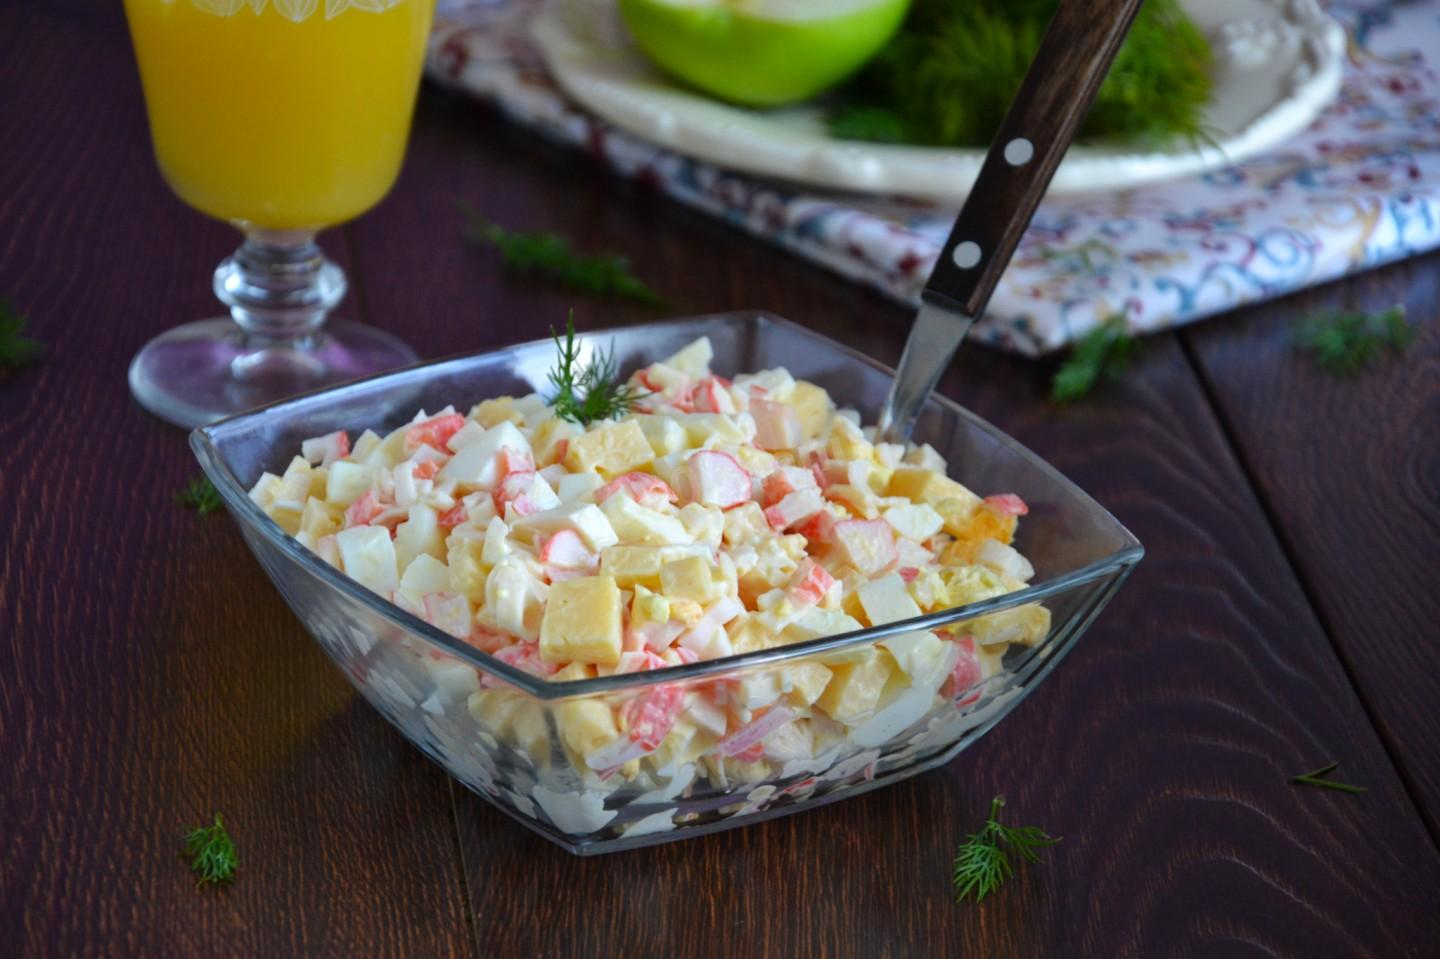 CRAB SALAD WITH CHEESE AND EGGS